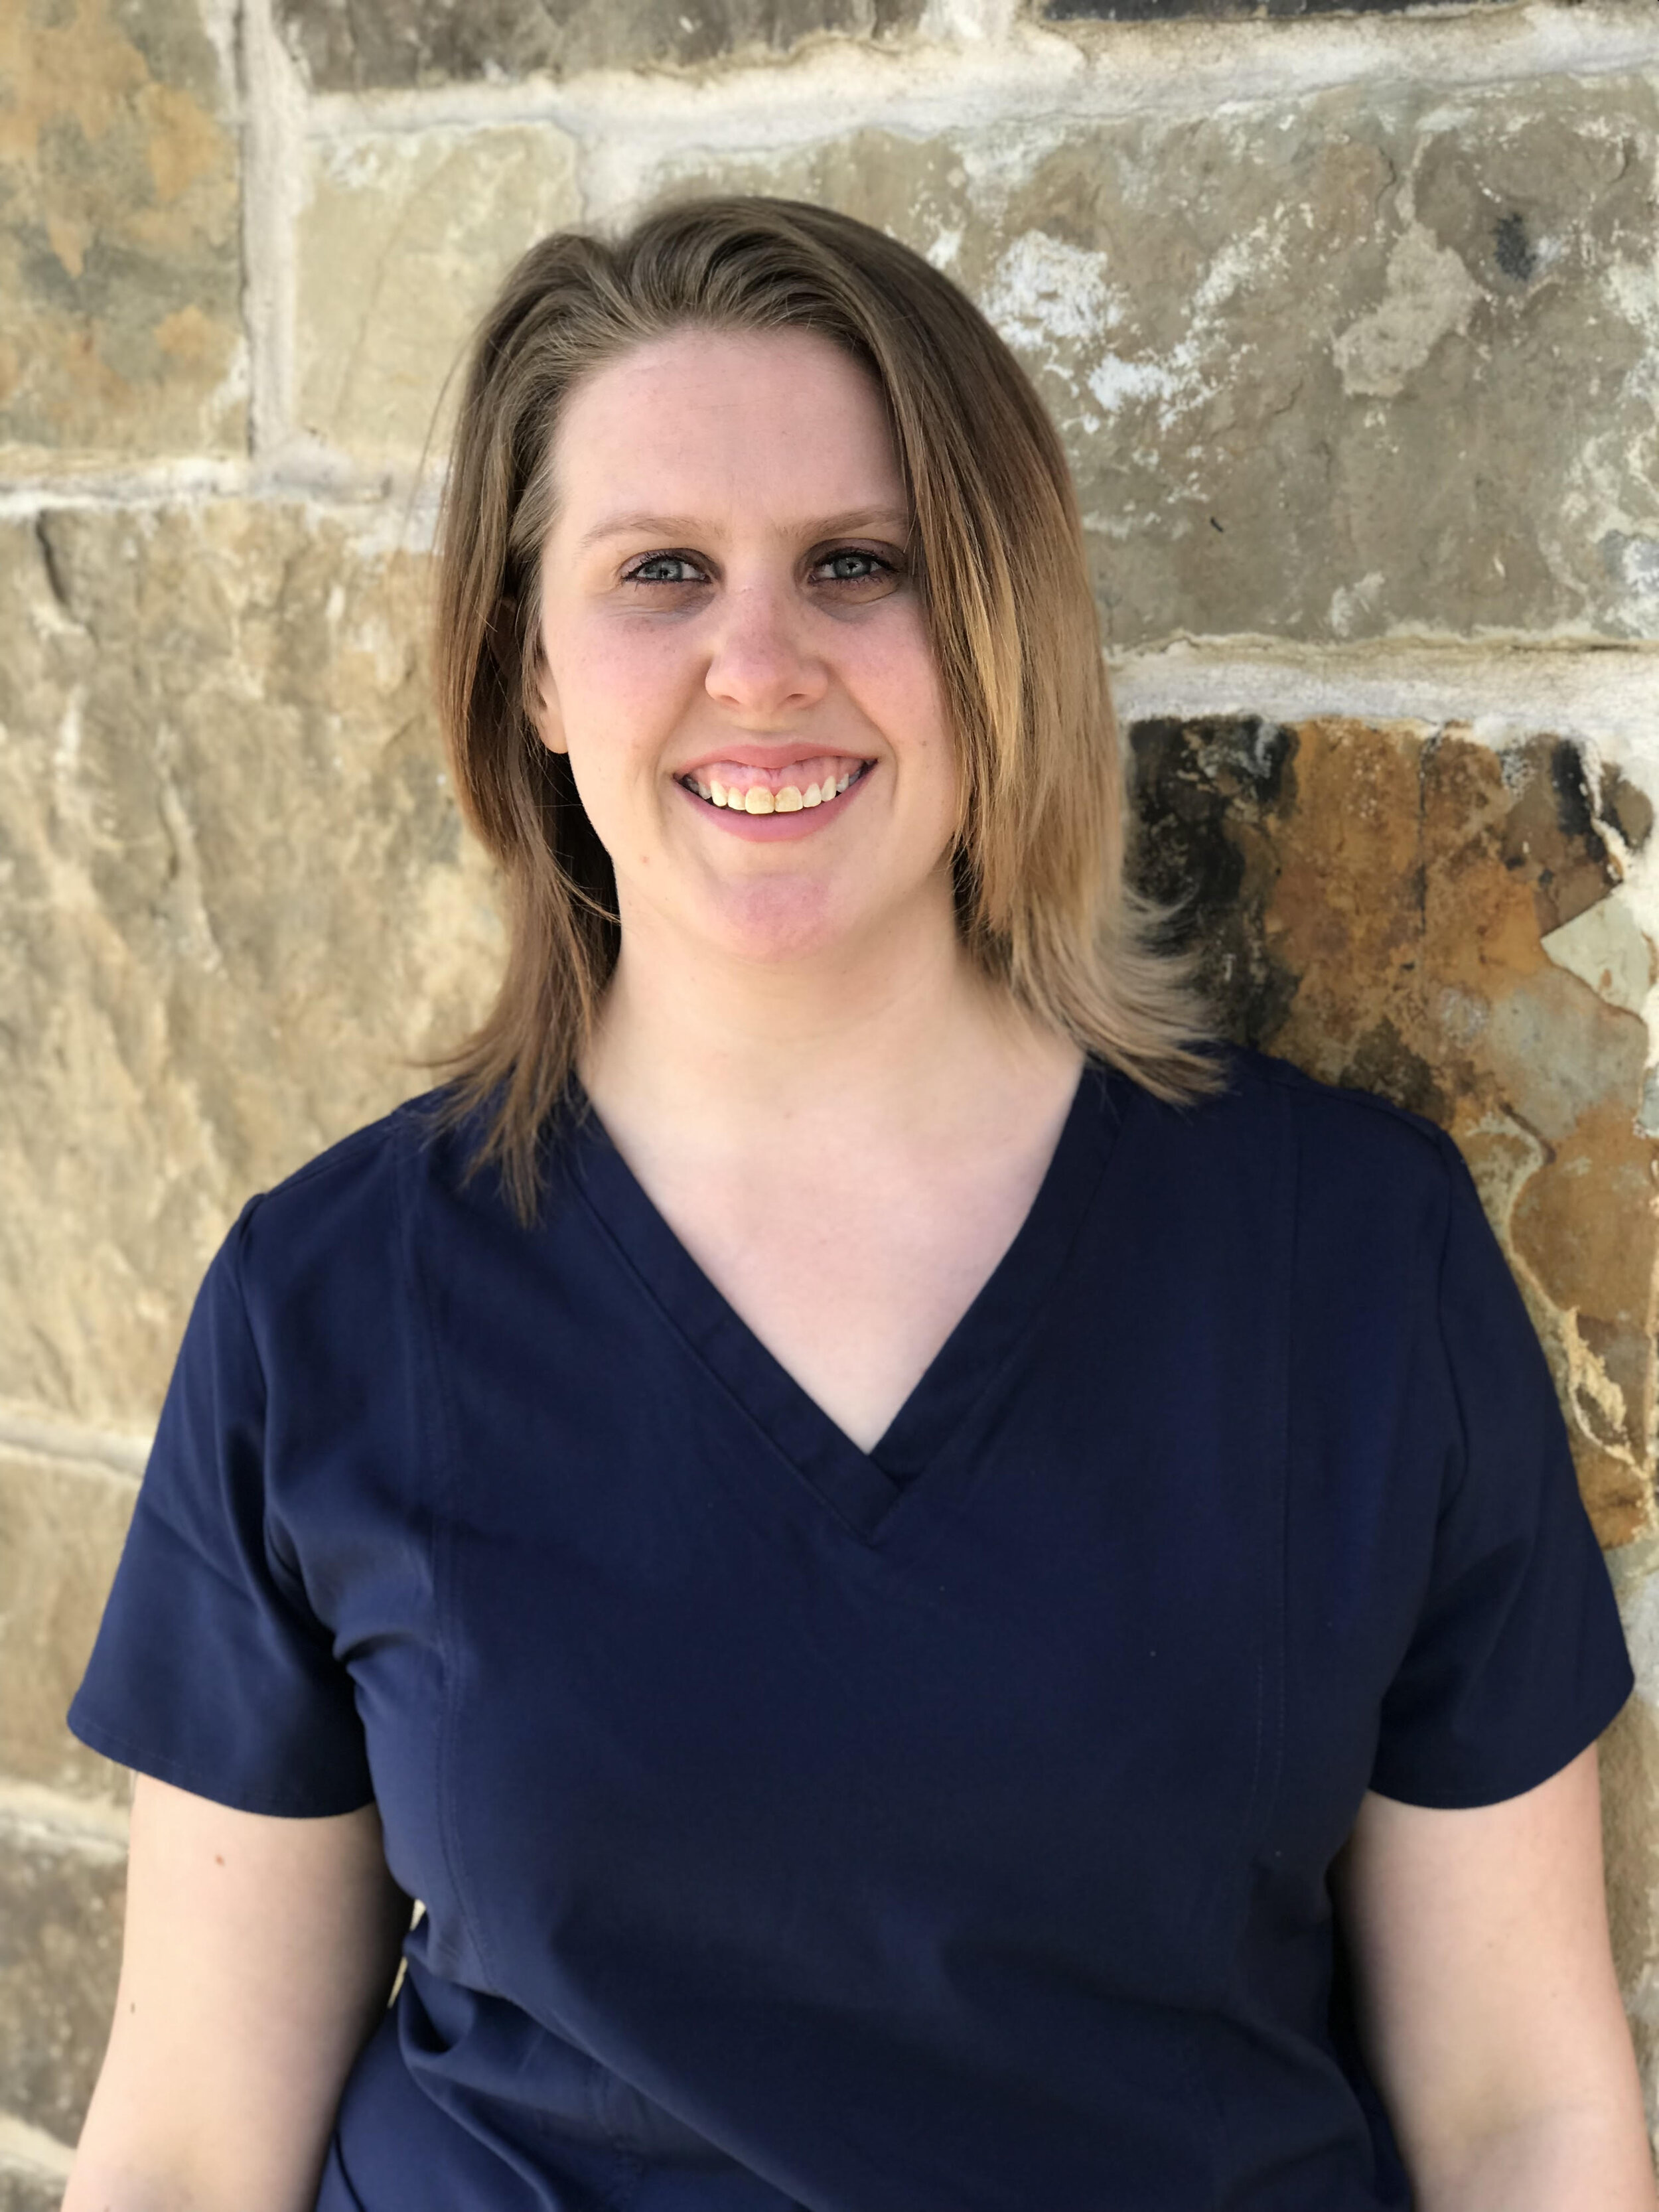 Sydnee - Sydnee began the massage therapy program at Parker University in the summer of 2017 and joined The Massage Connection in January of 2018. Unlike many LMT's at the beginning of their careers, Sydnee worked as a massage therapist under a chiropractor while she was in school! By the time she graduated, her skills were far beyond those in her class. Sydnee brings a high level of intuition and natural talent into her massage sessions. She has a Bachelor of Fine Arts degree, is a runner, and plays roller derby for the Dallas Derby Devils. This combination gives her a unique, relatable quality to her clients.